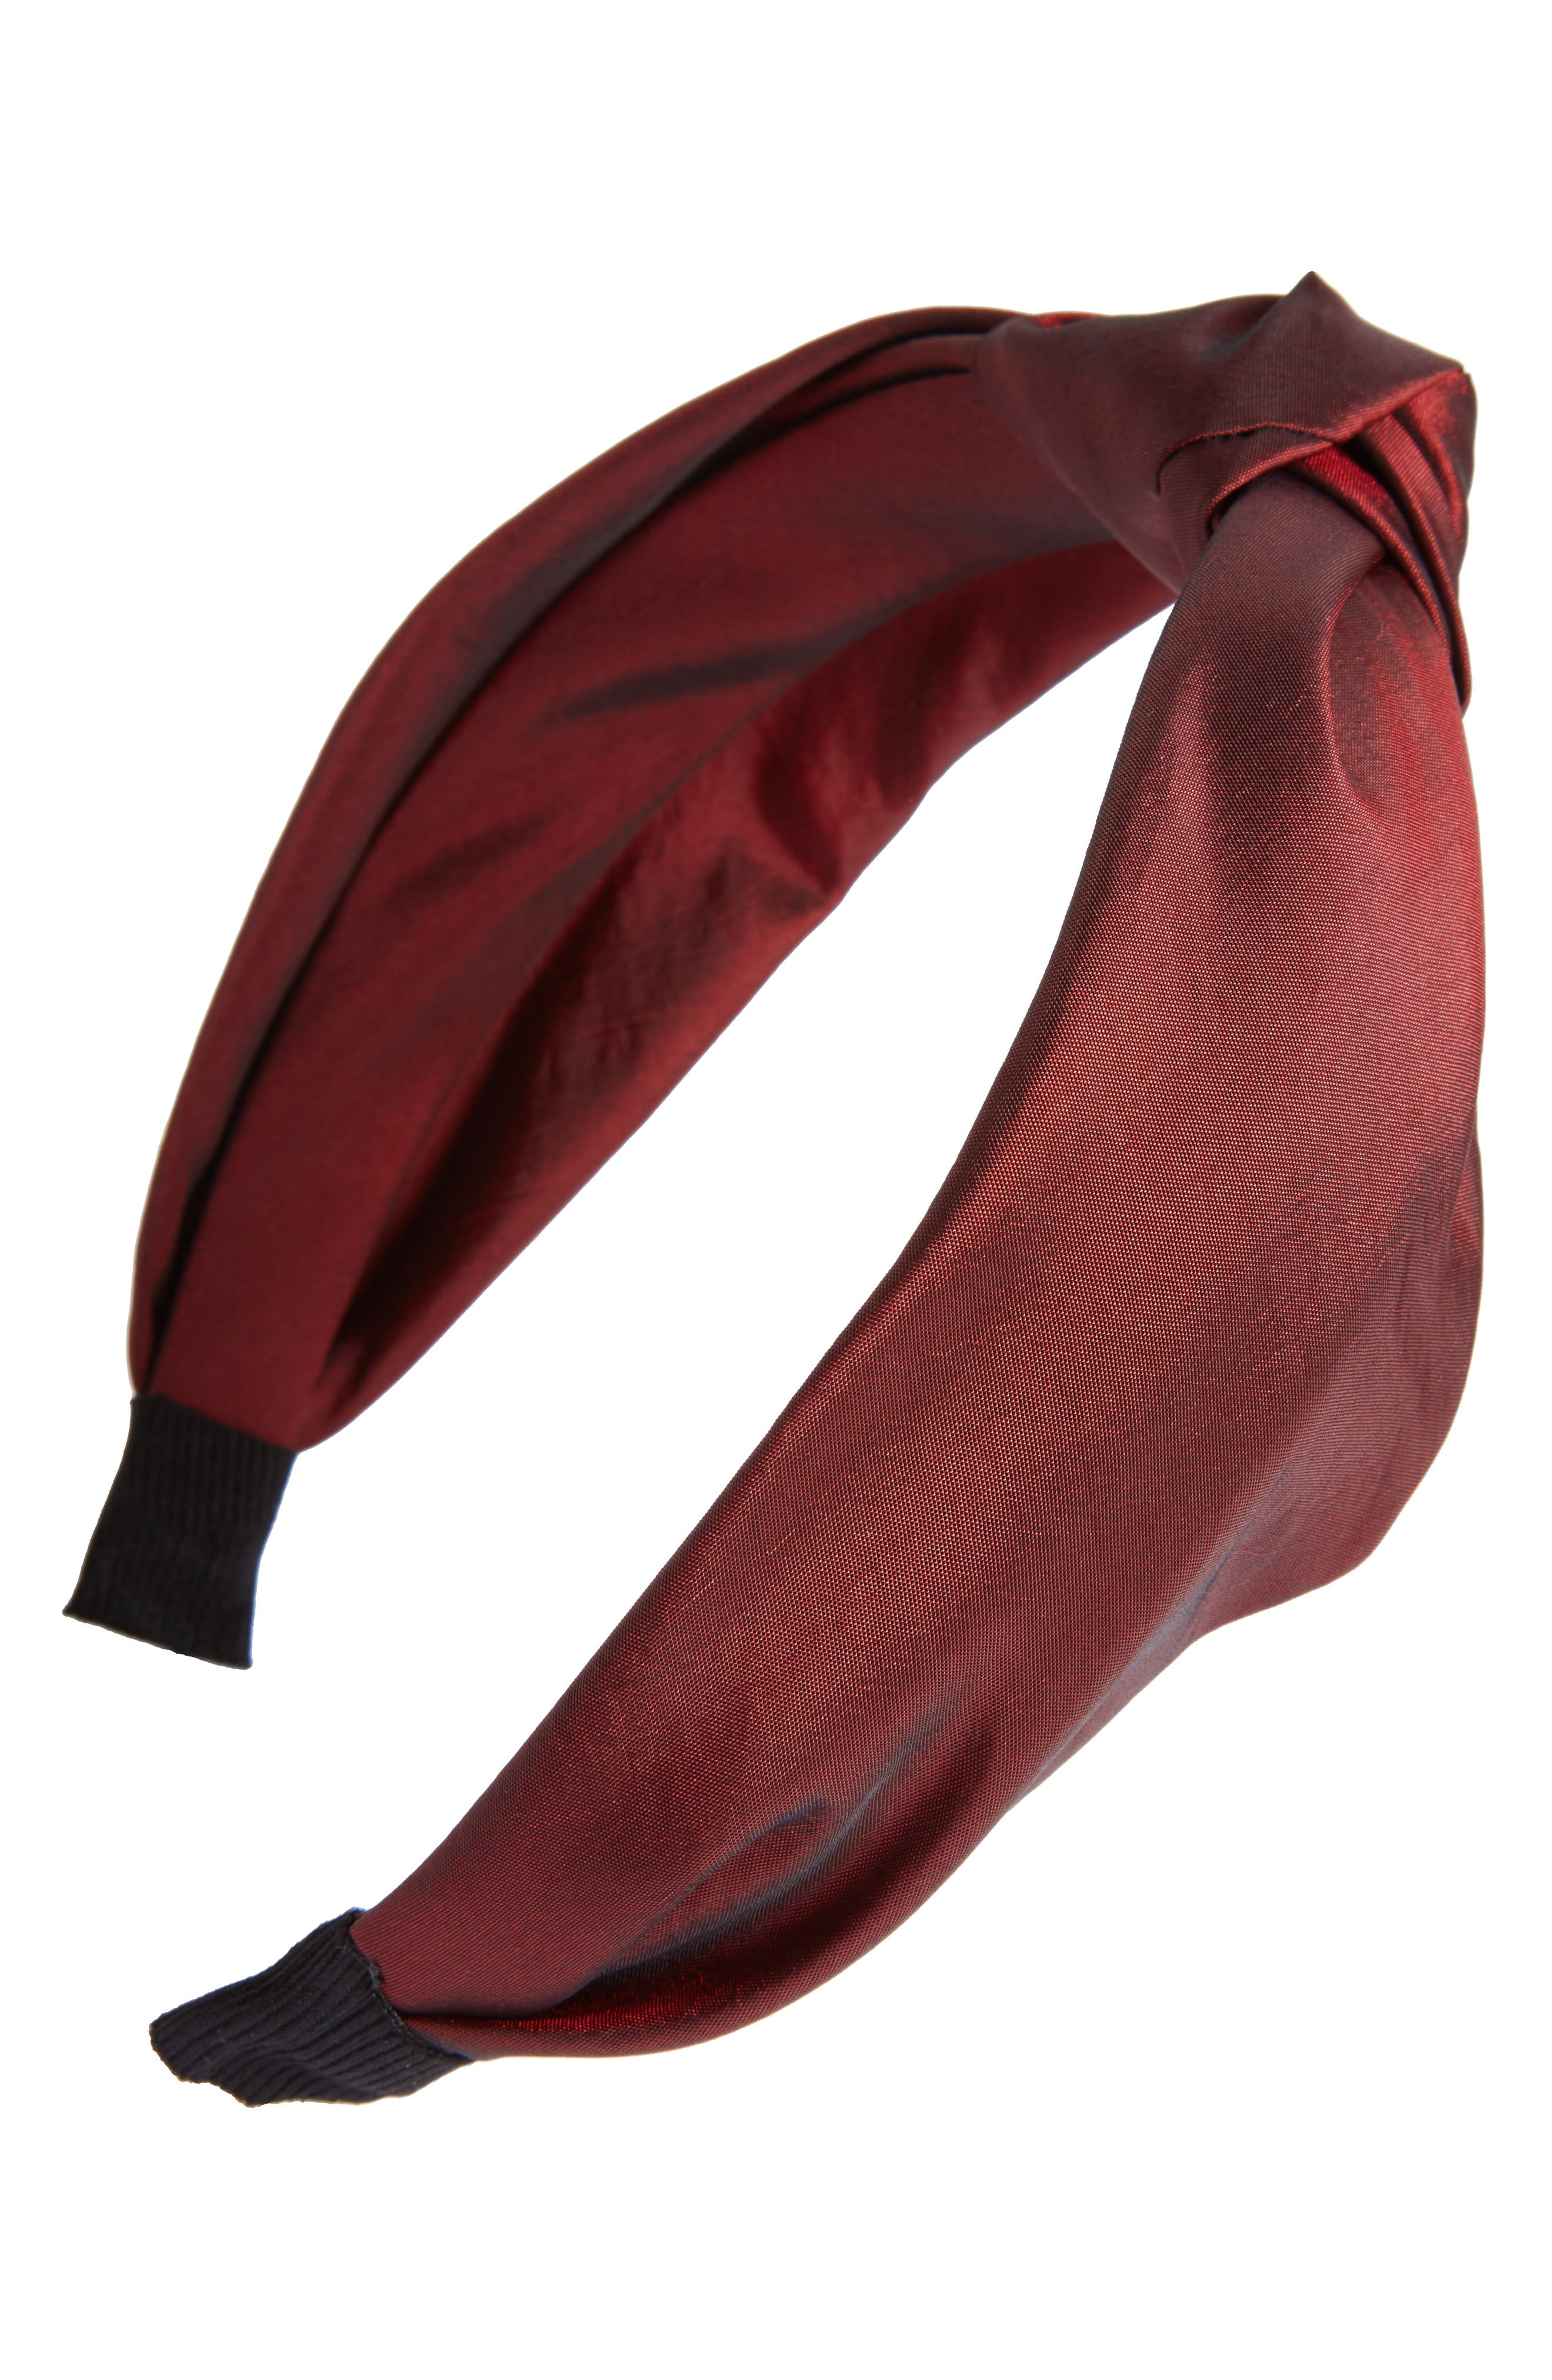 Knotted Taffeta Headband,                             Main thumbnail 1, color,                             Burgundy